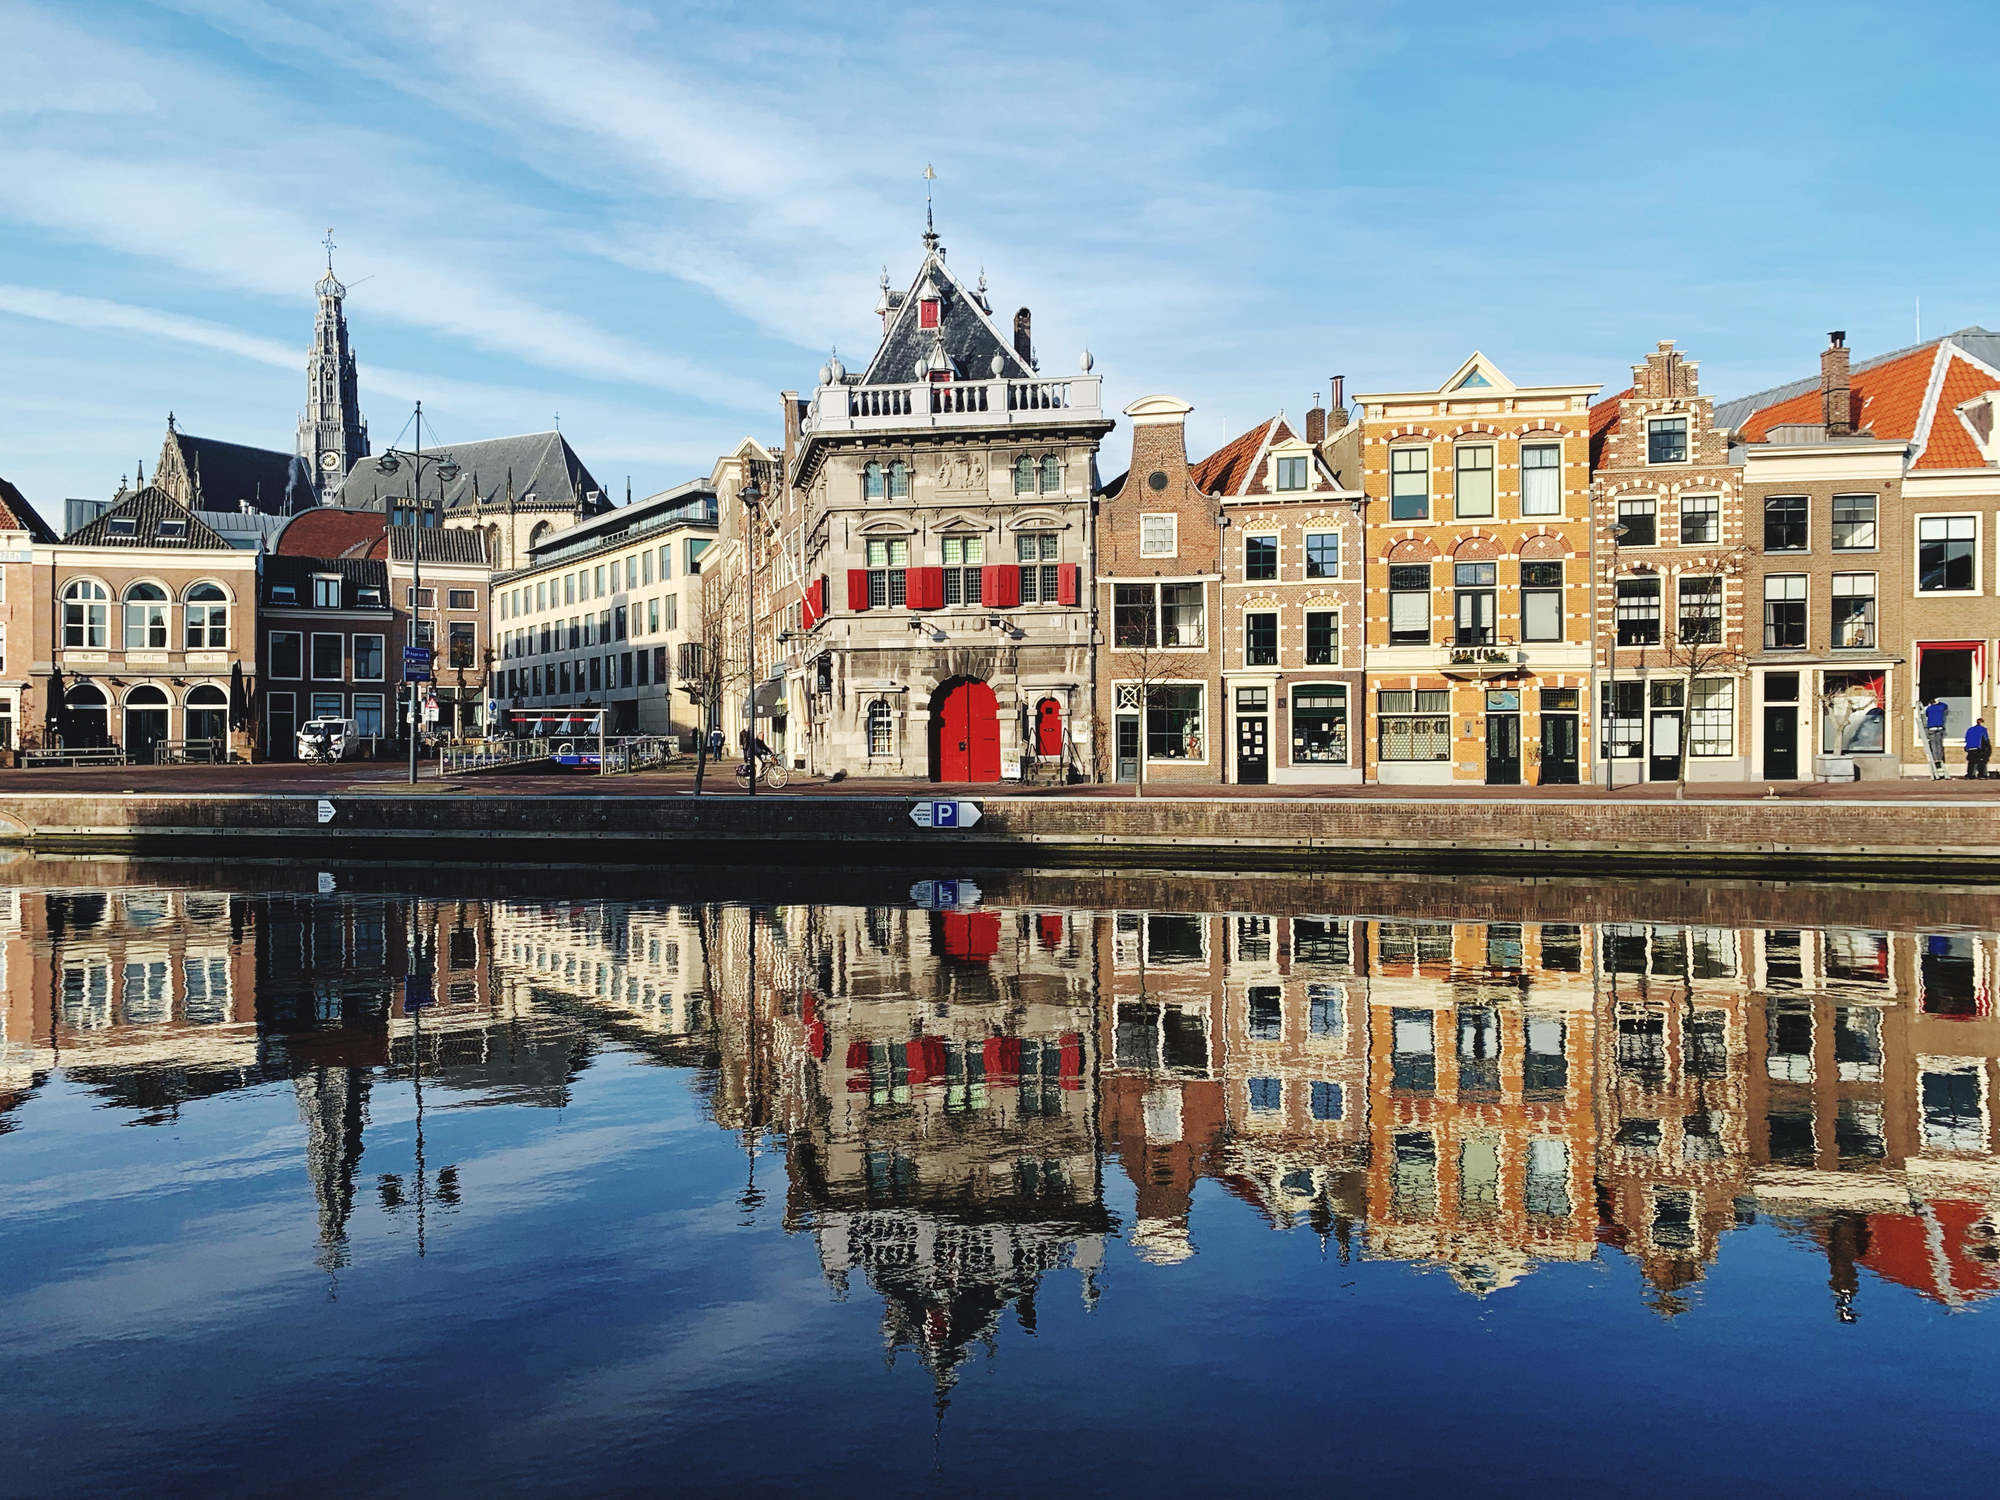 Buildings along the canal in Haarlem, Netherlands